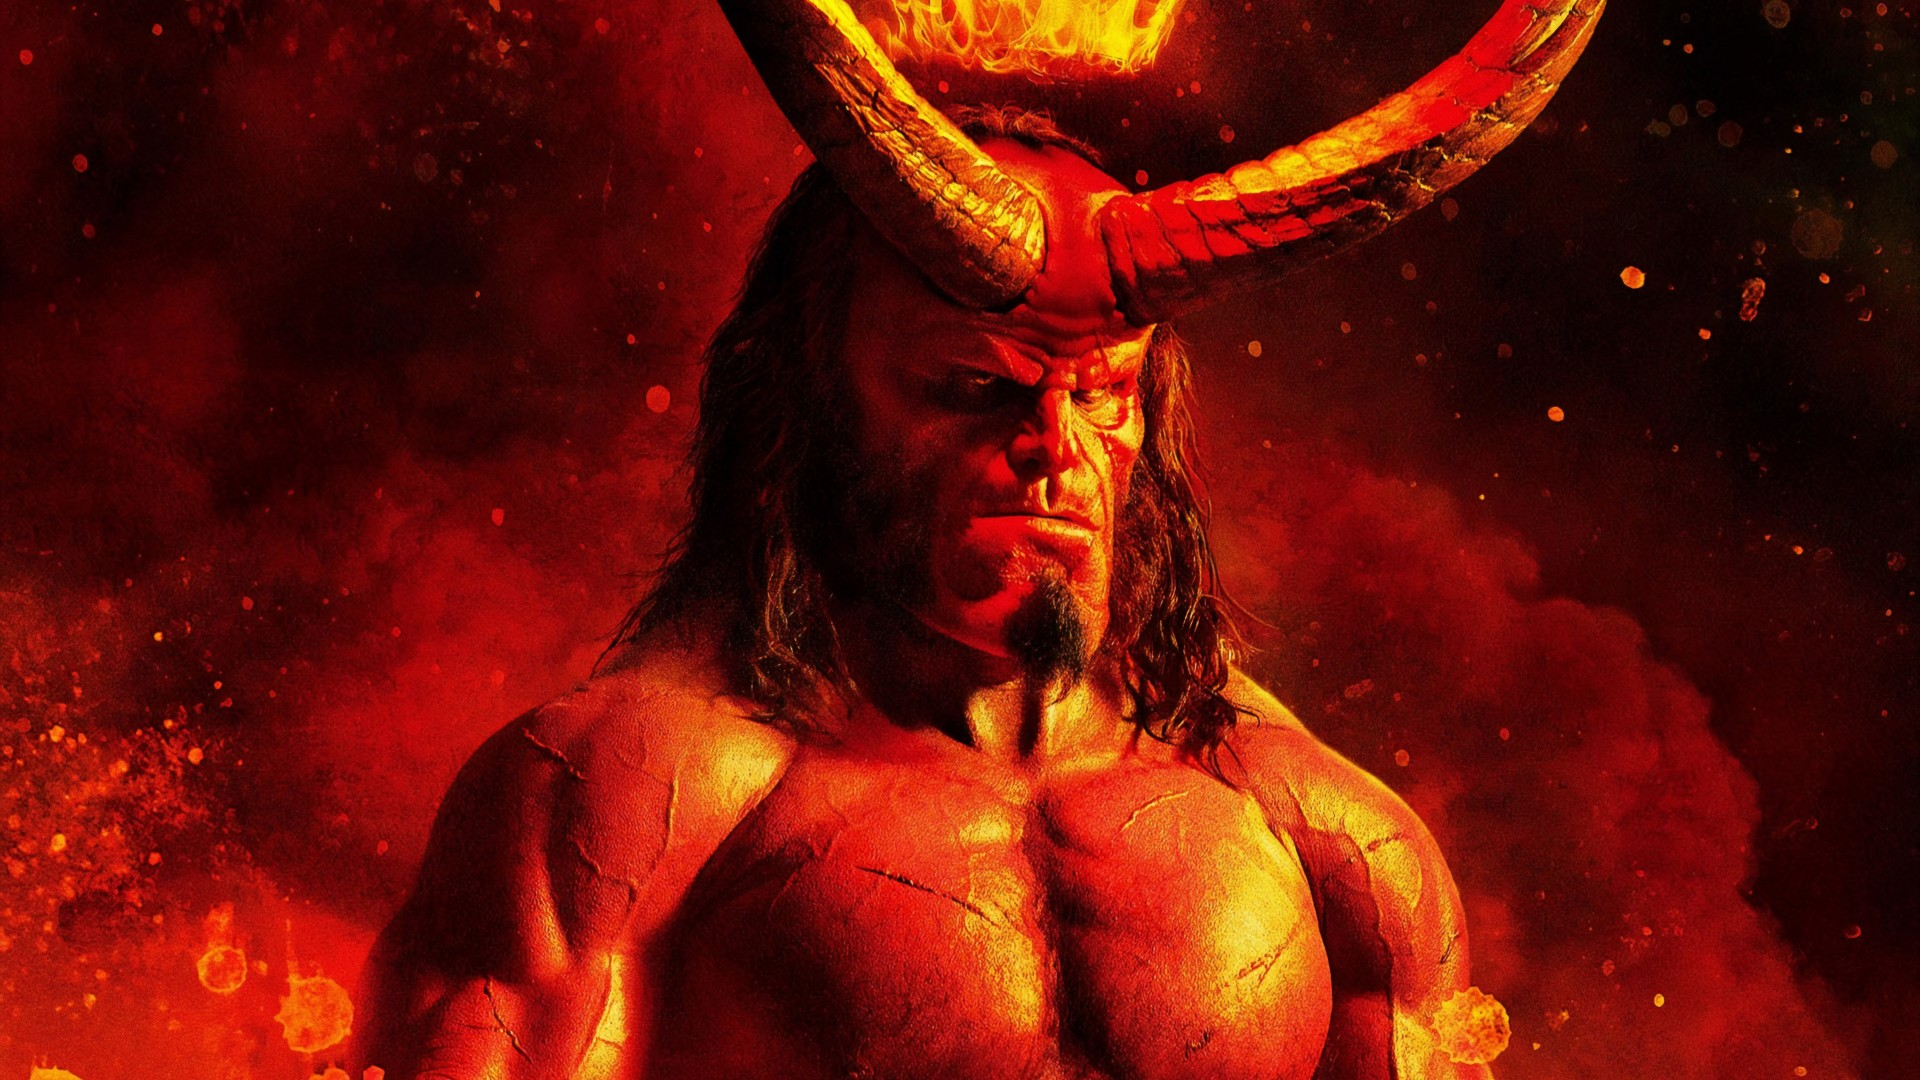 New Wallpaper For Iphone 5s Hellboy 2019 4k 5k Wallpapers Hd Wallpapers Id 27379